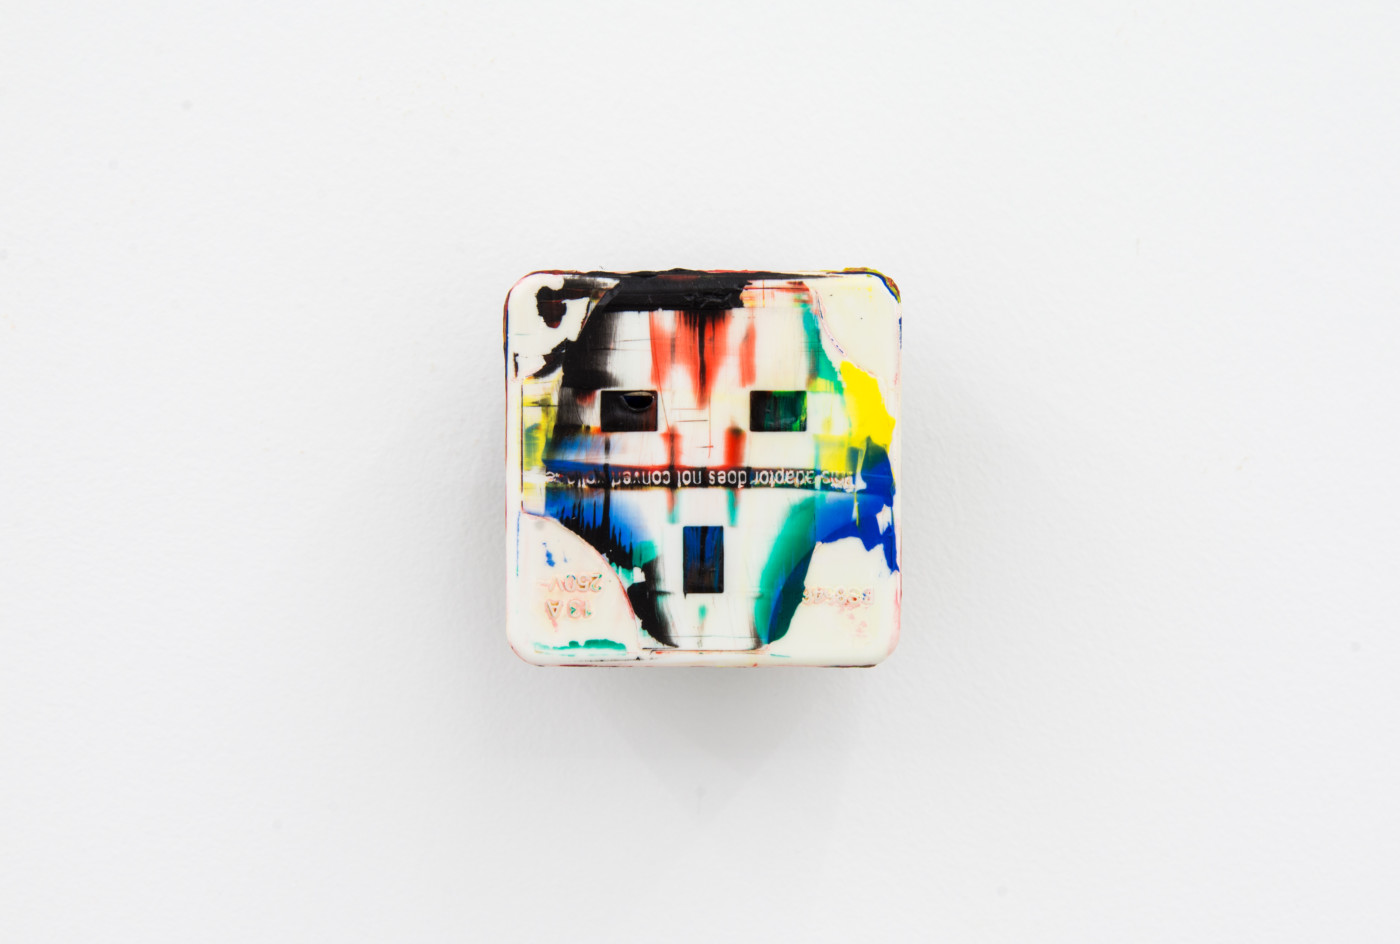 KEITH FARQUHAR  Scream #2</I>, 2019 Oil on travel adaptor 6 x 6 x 4,6 cm / 2.3 x 2.3 x 1.8 in